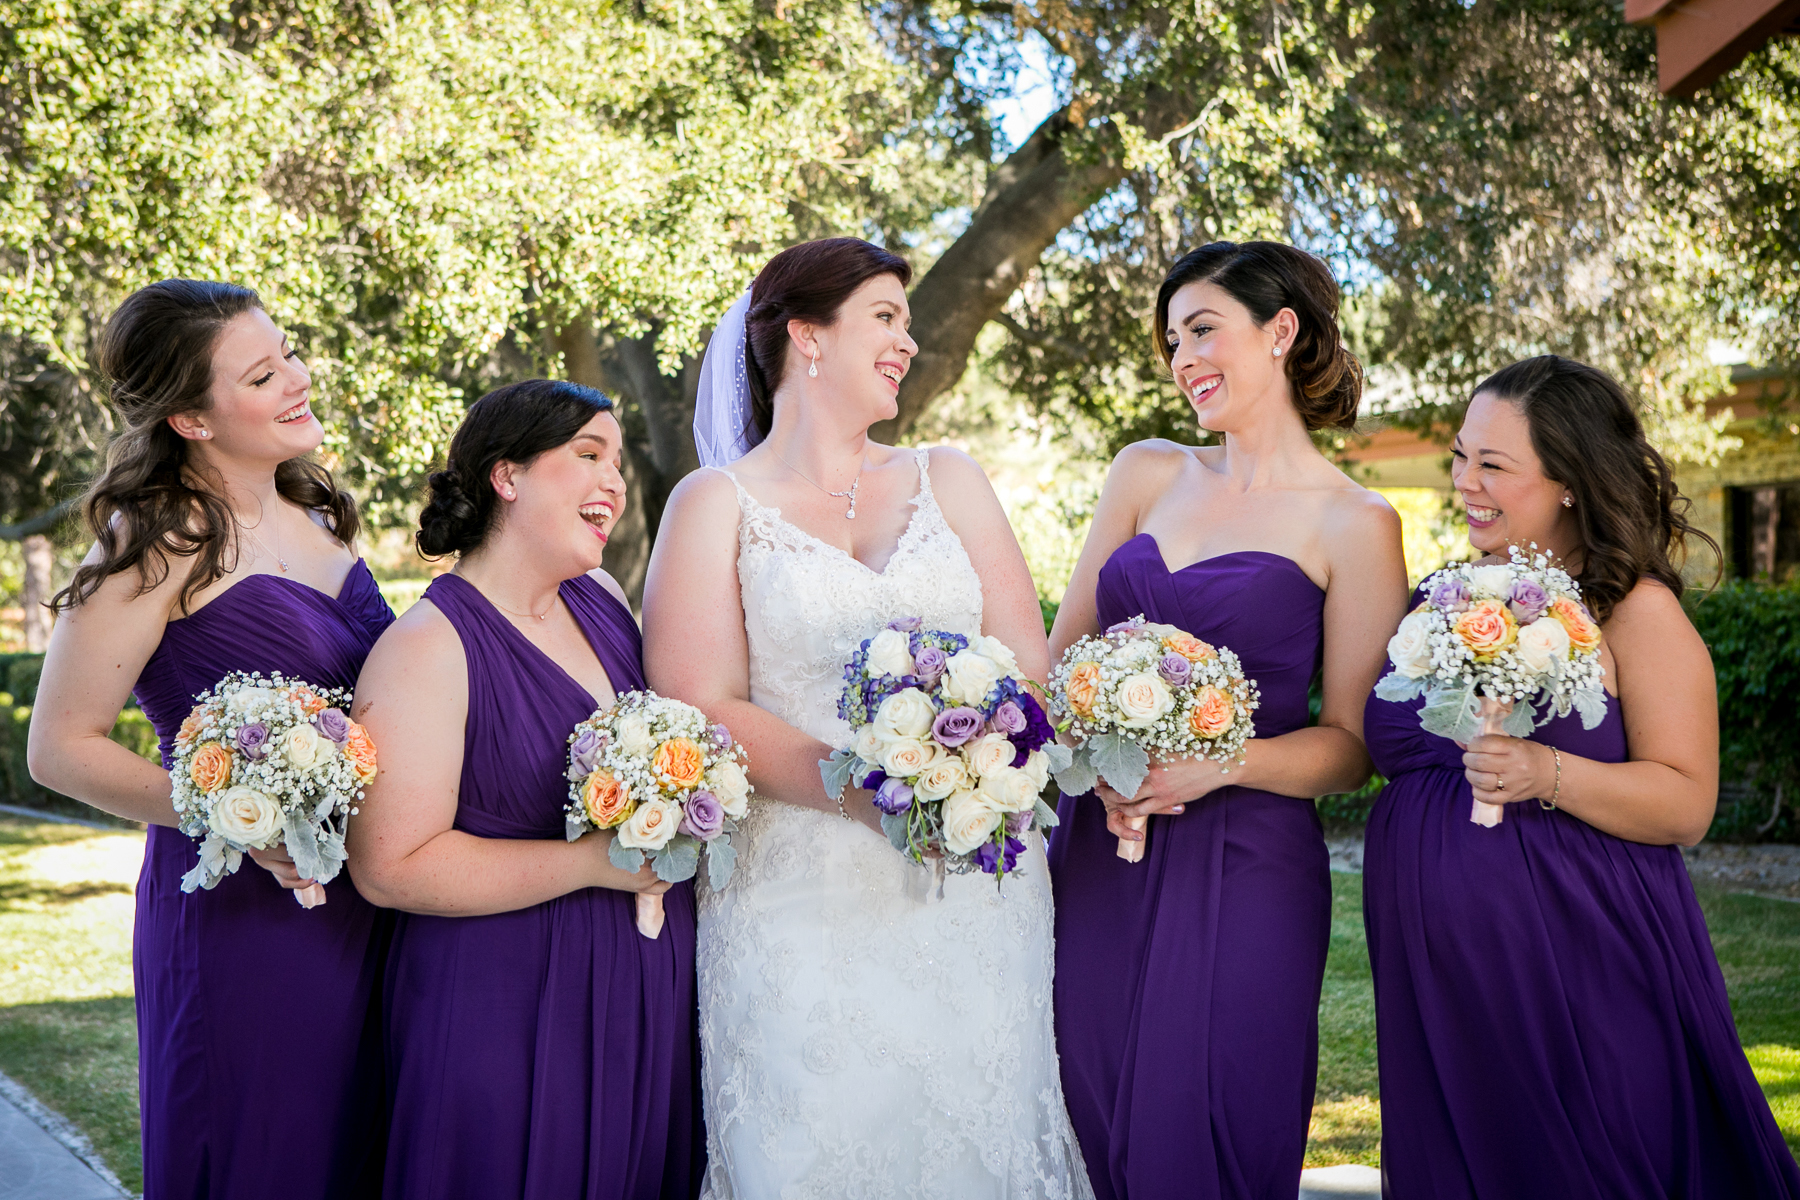 020 Wedding At Dove Canyon Golf Club Rancho Santa